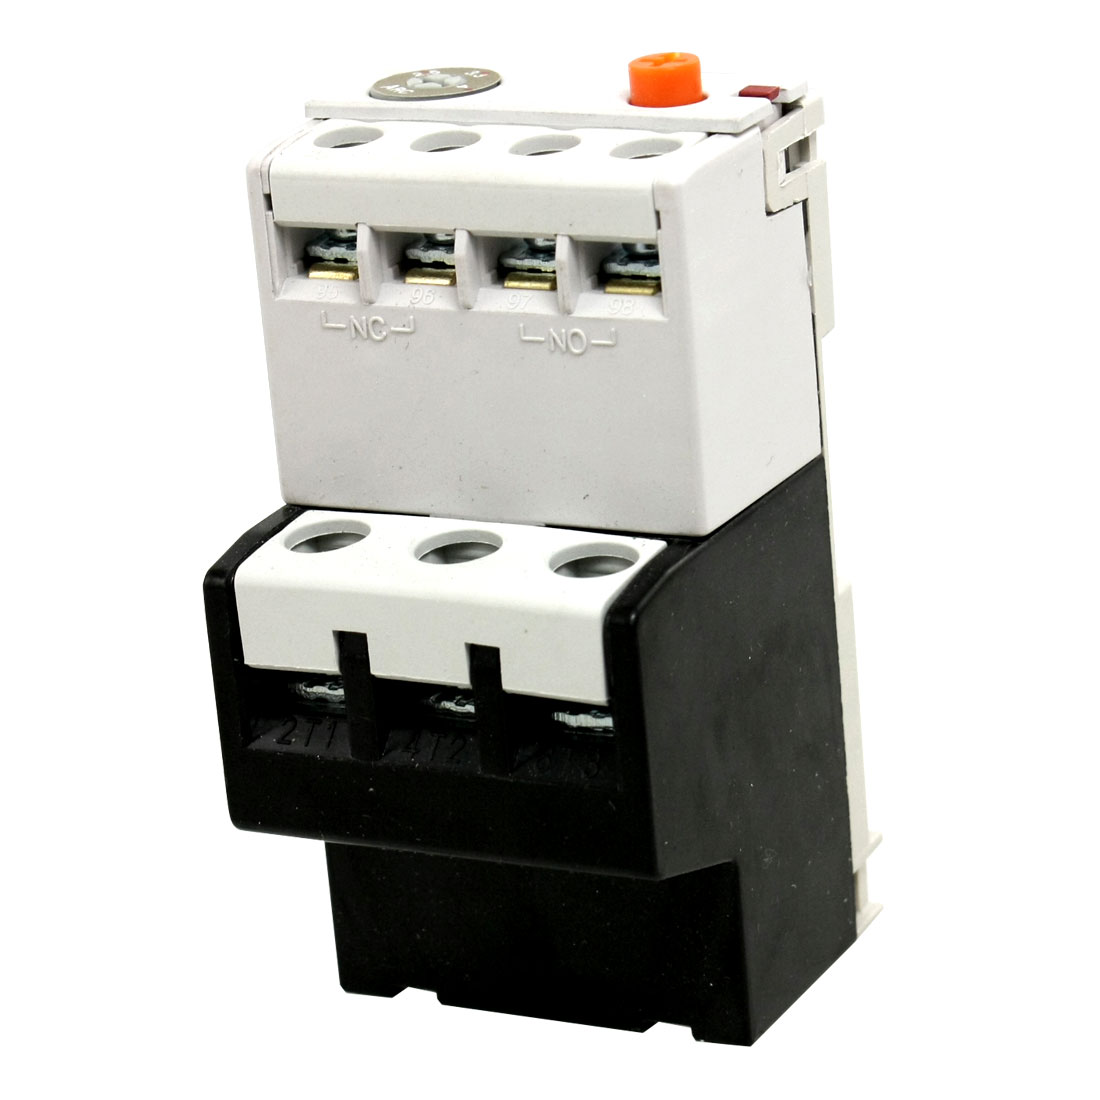 2.5-4A Setting Range Three Phase 2NO 2NC Thermal Overload Relay